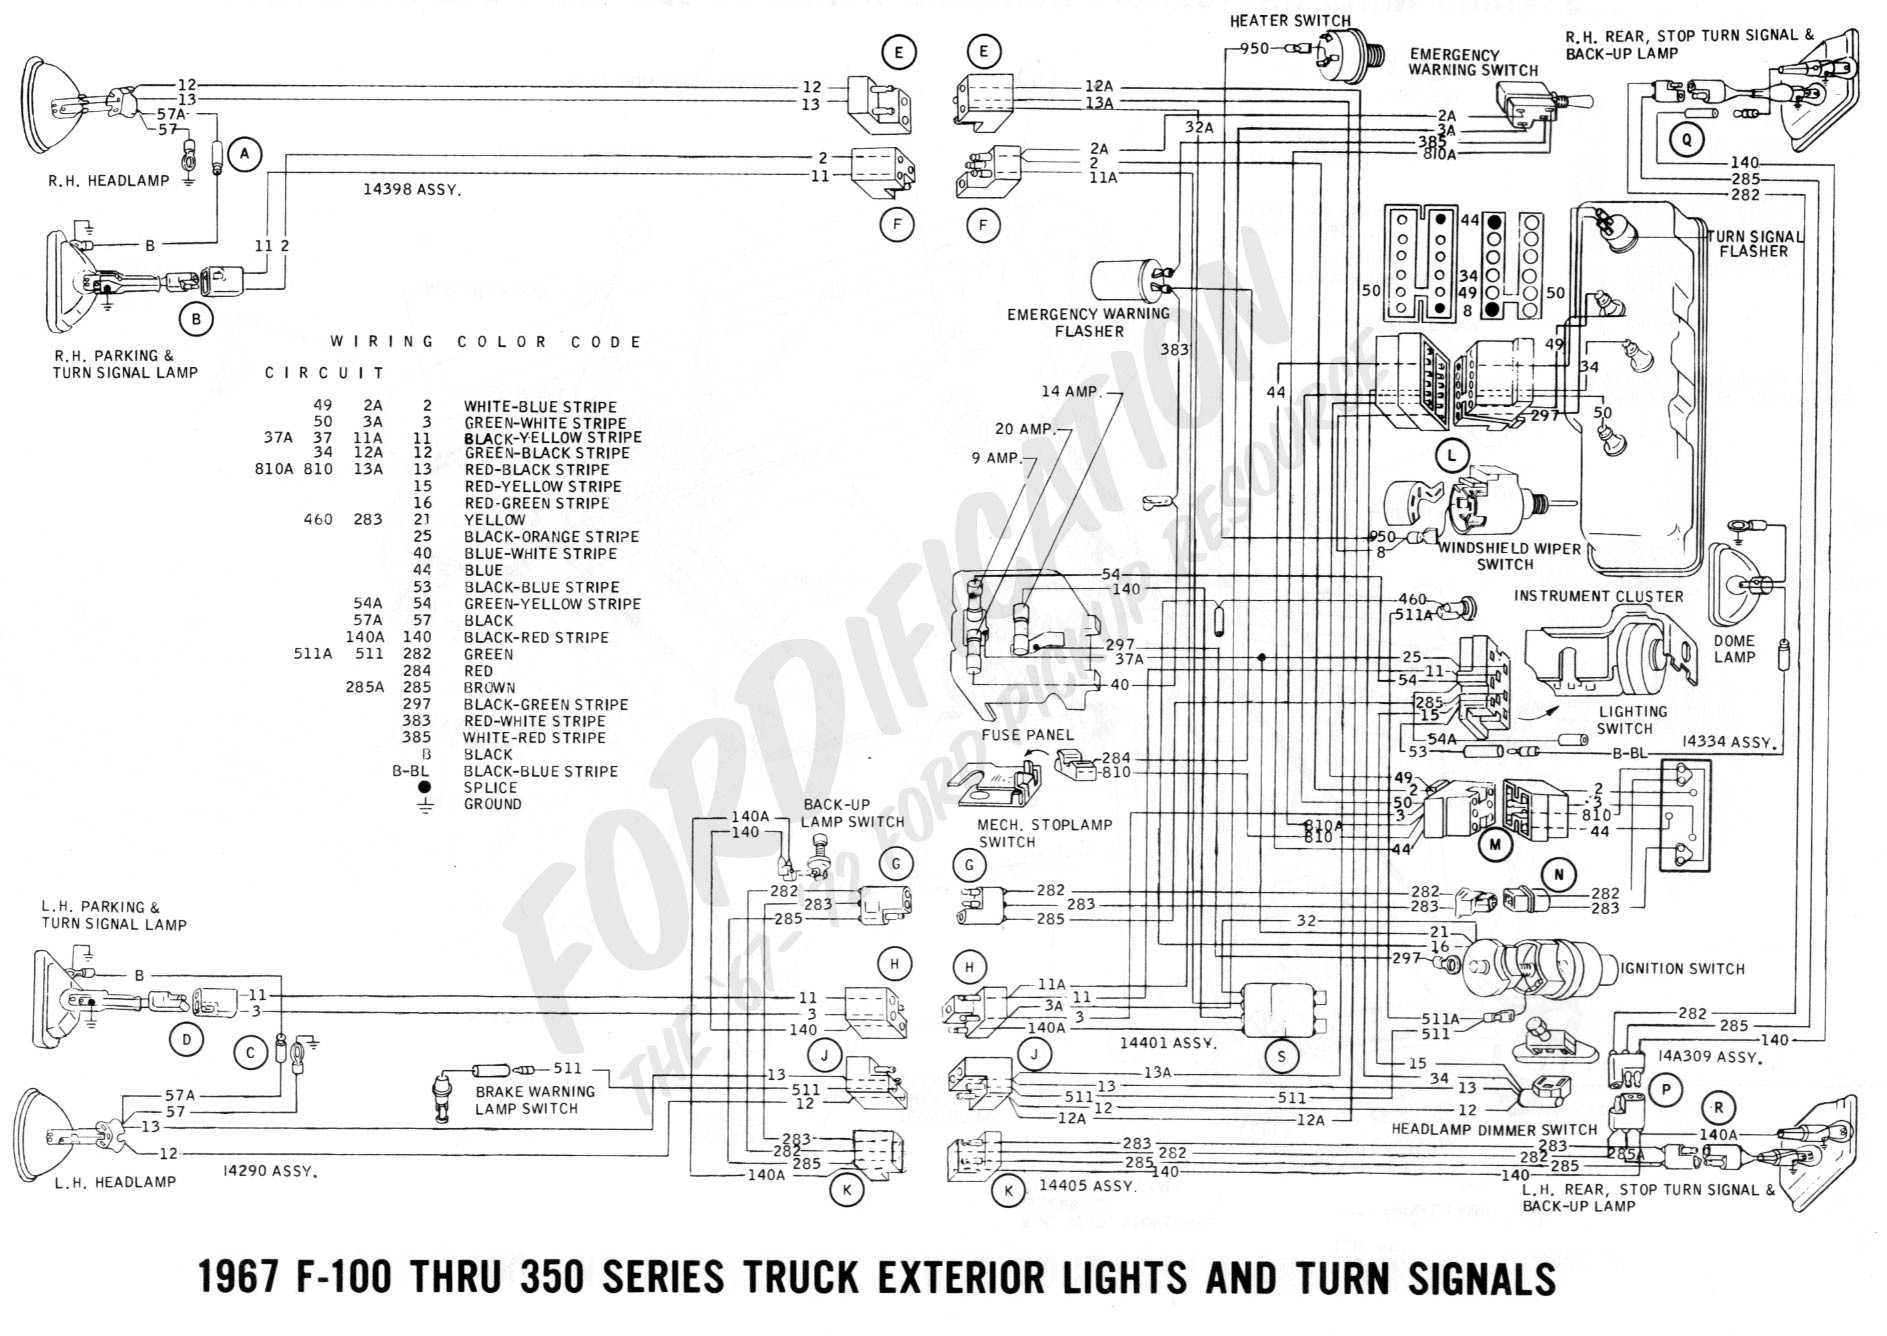 1969 ford mustang ignition wiring diagram nissan sentra color codes 1968 torino